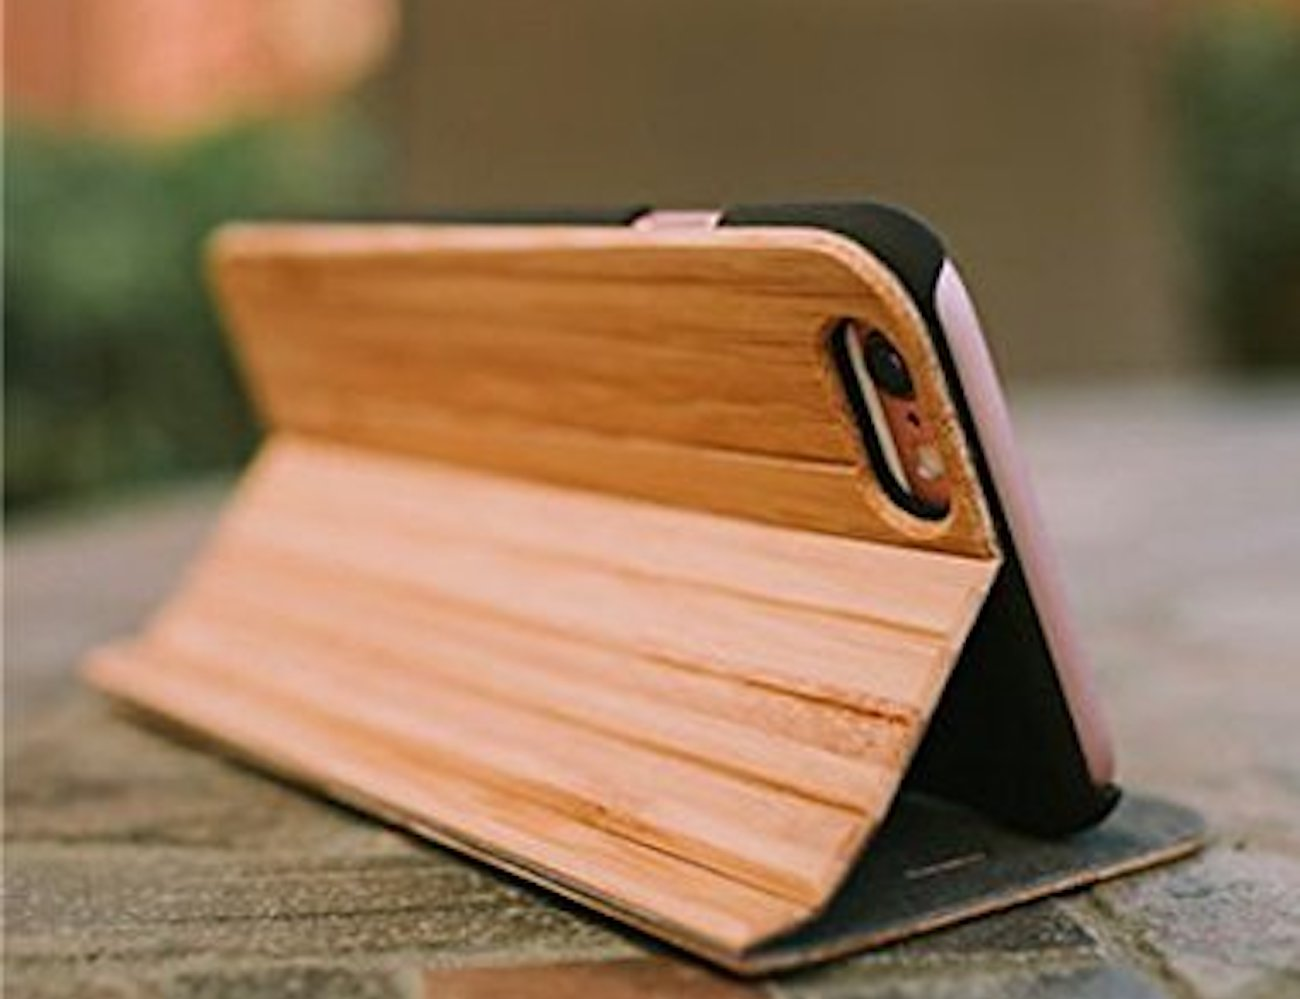 Reveal Wooden iPhone Folio Case